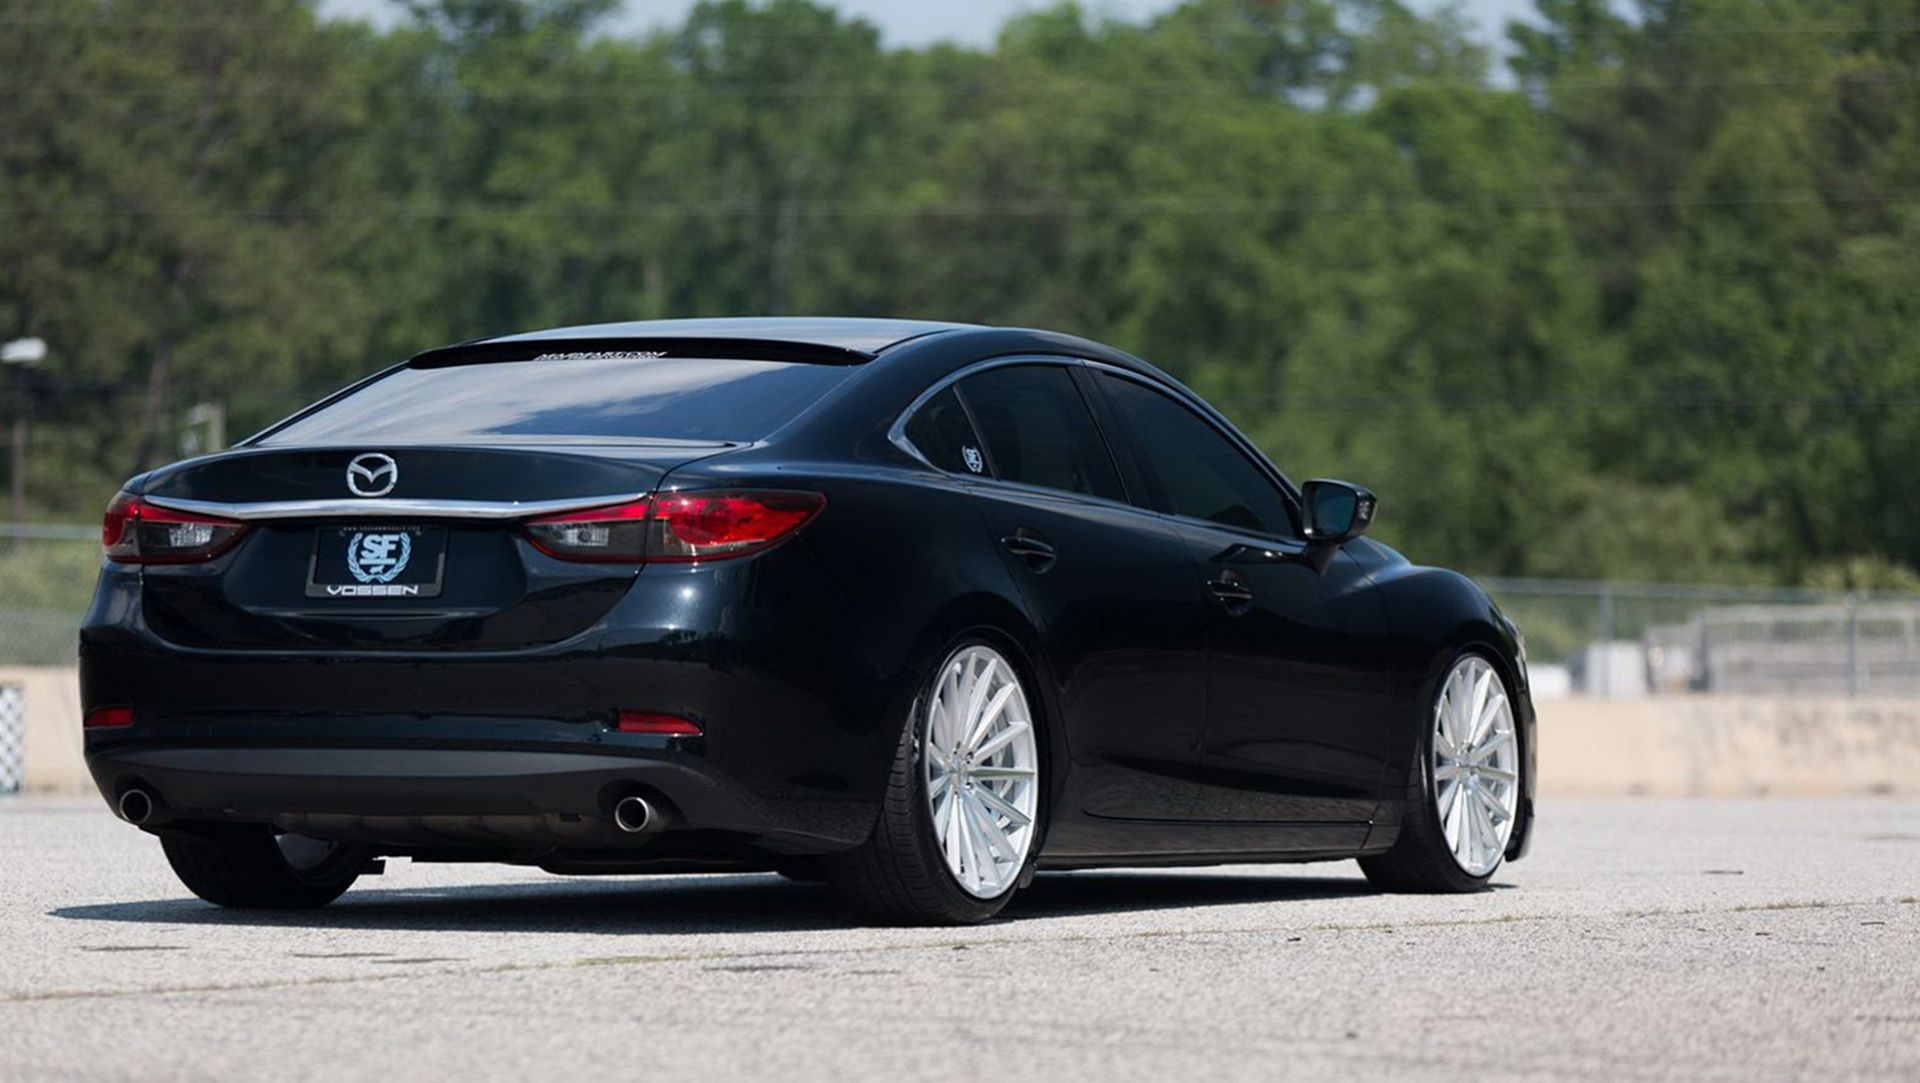 mazda 6 vossen google search mazda pinterest mazda. Black Bedroom Furniture Sets. Home Design Ideas